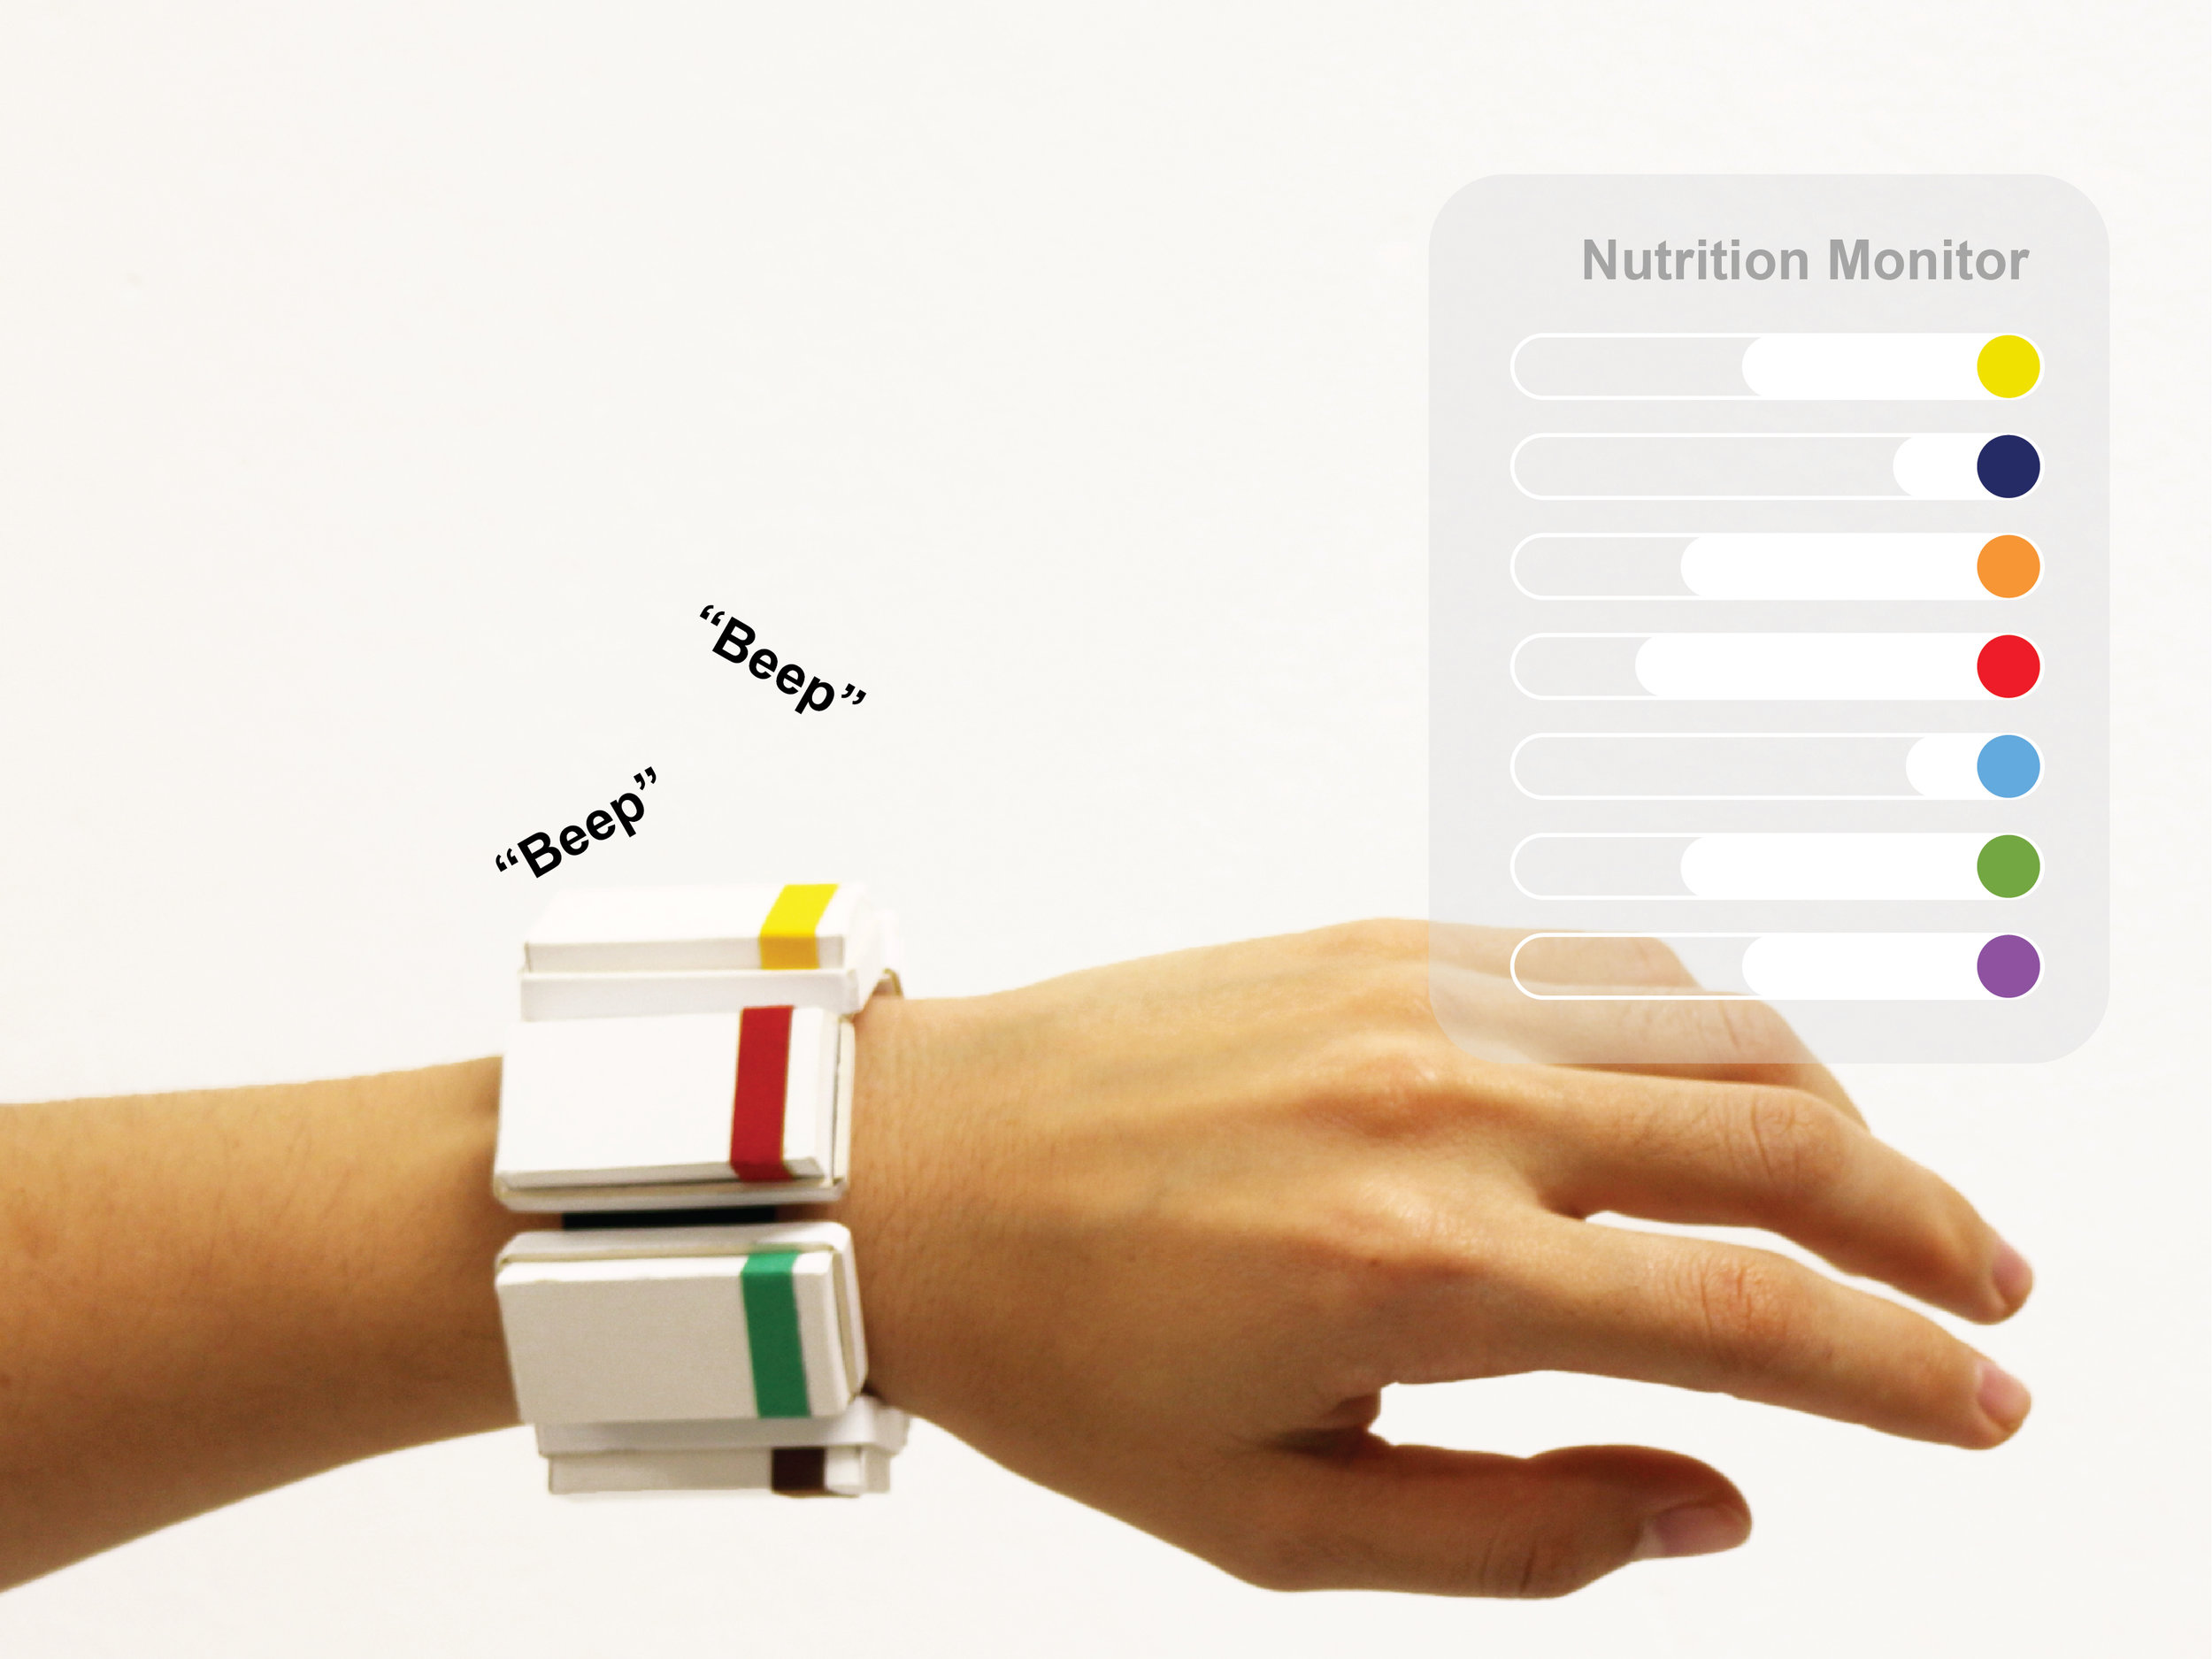 2 Detects insufficient nutrients in the body -